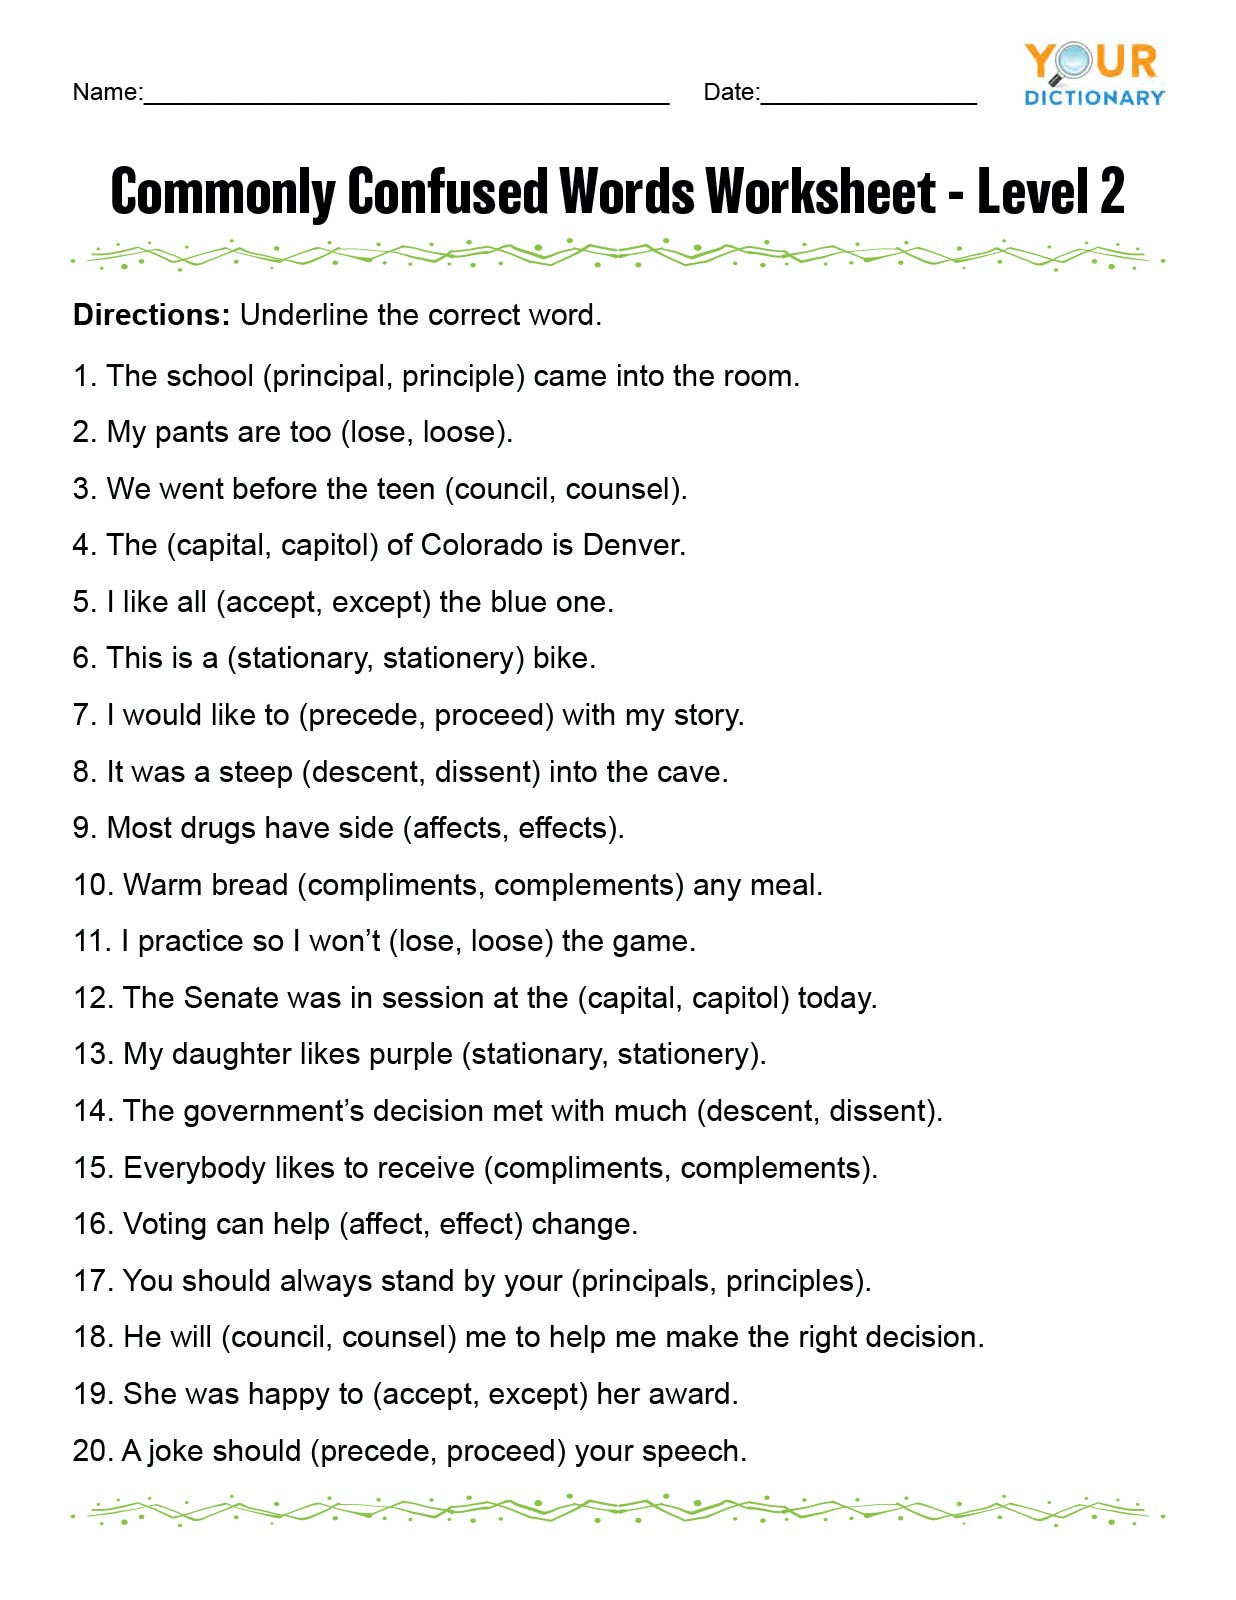 Dictionary Skills Worksheets Middle School Monly Confused Words Worksheet